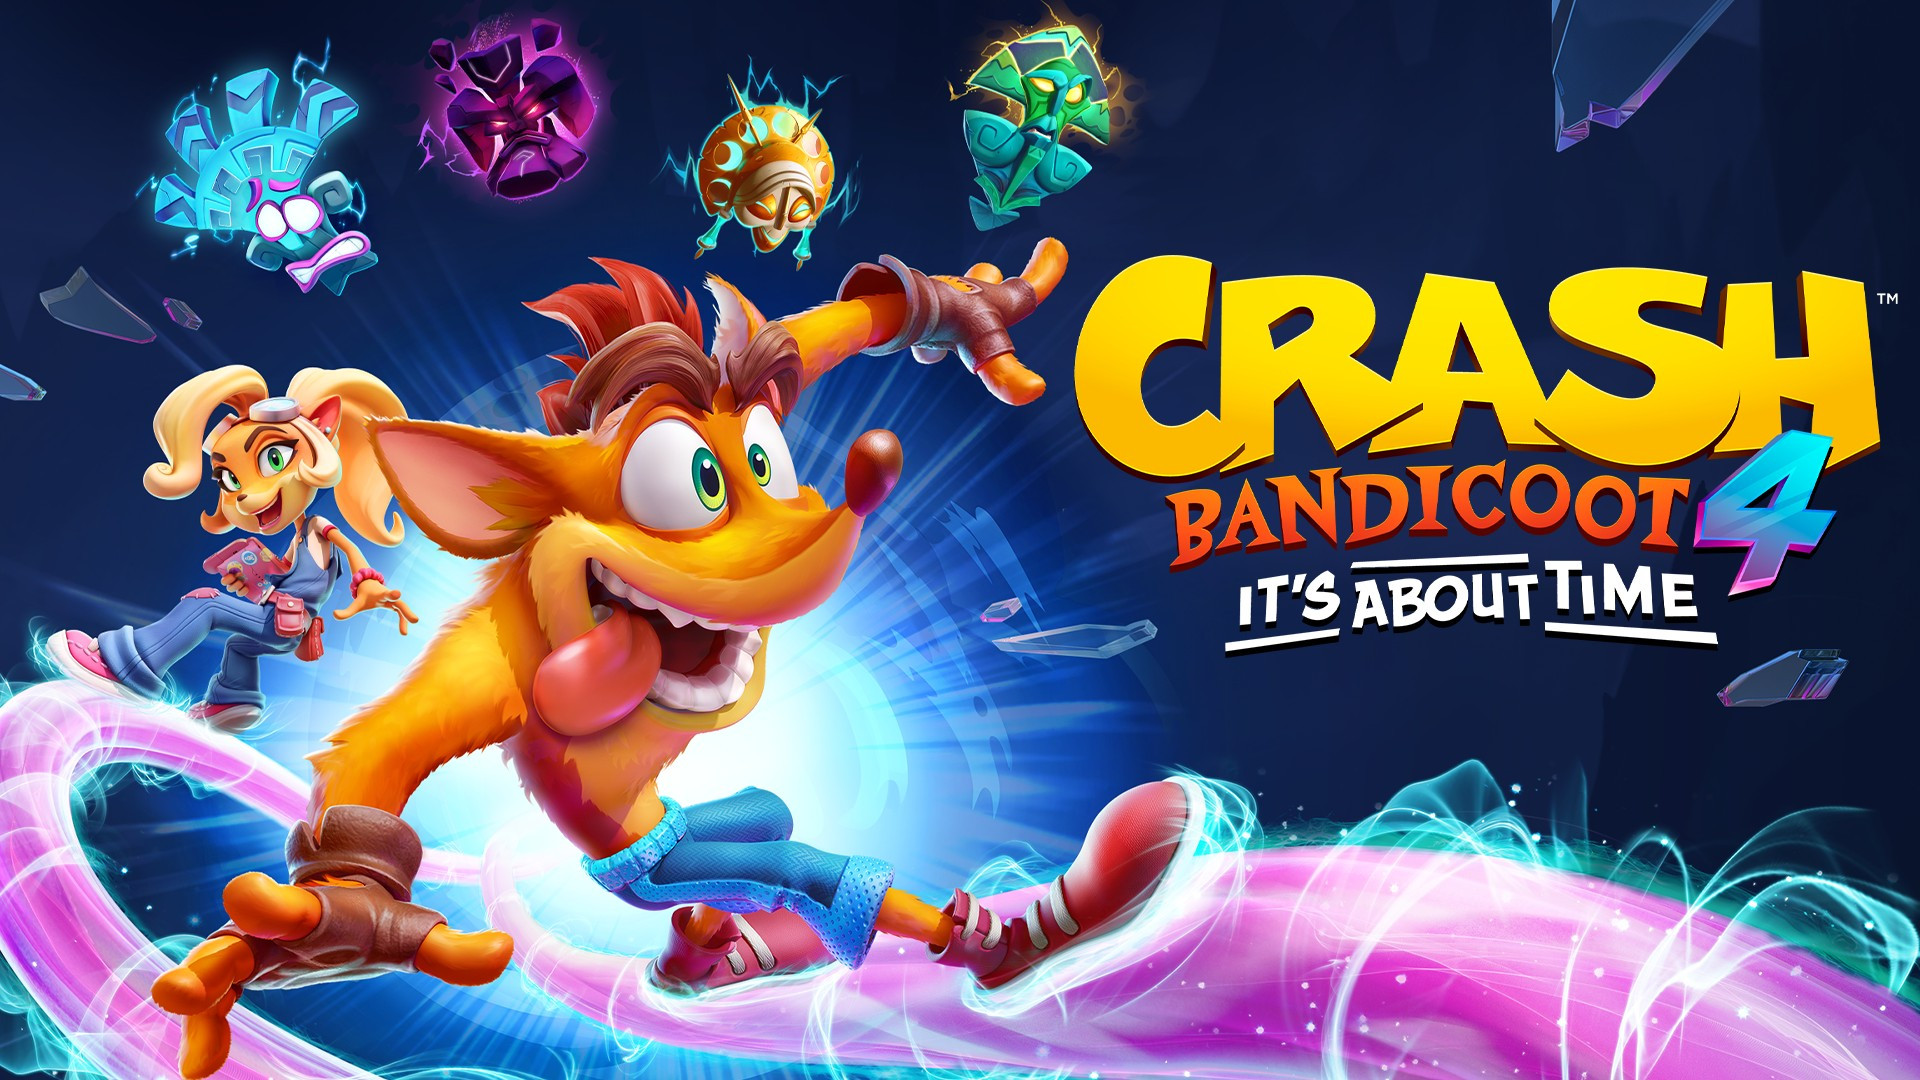 Crash-4_Reveal_X1_Social_Banner_1920x1080_JPG